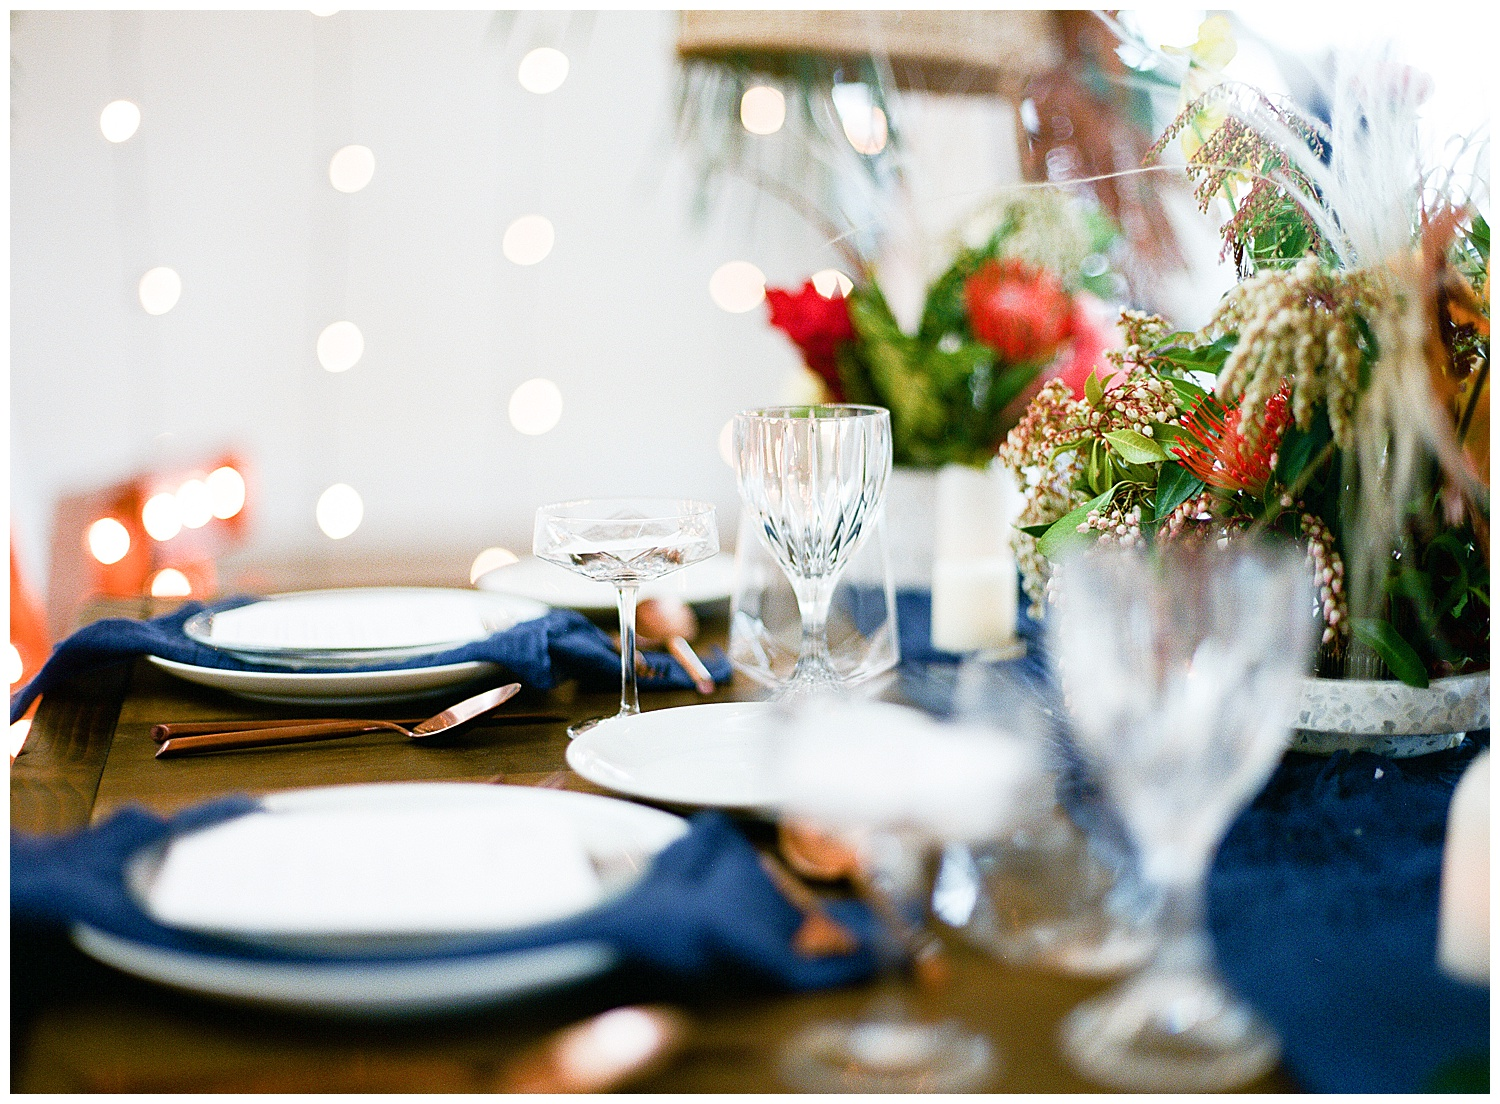 engaged-event-back-patio-event-design-sweetheart-table.jpg